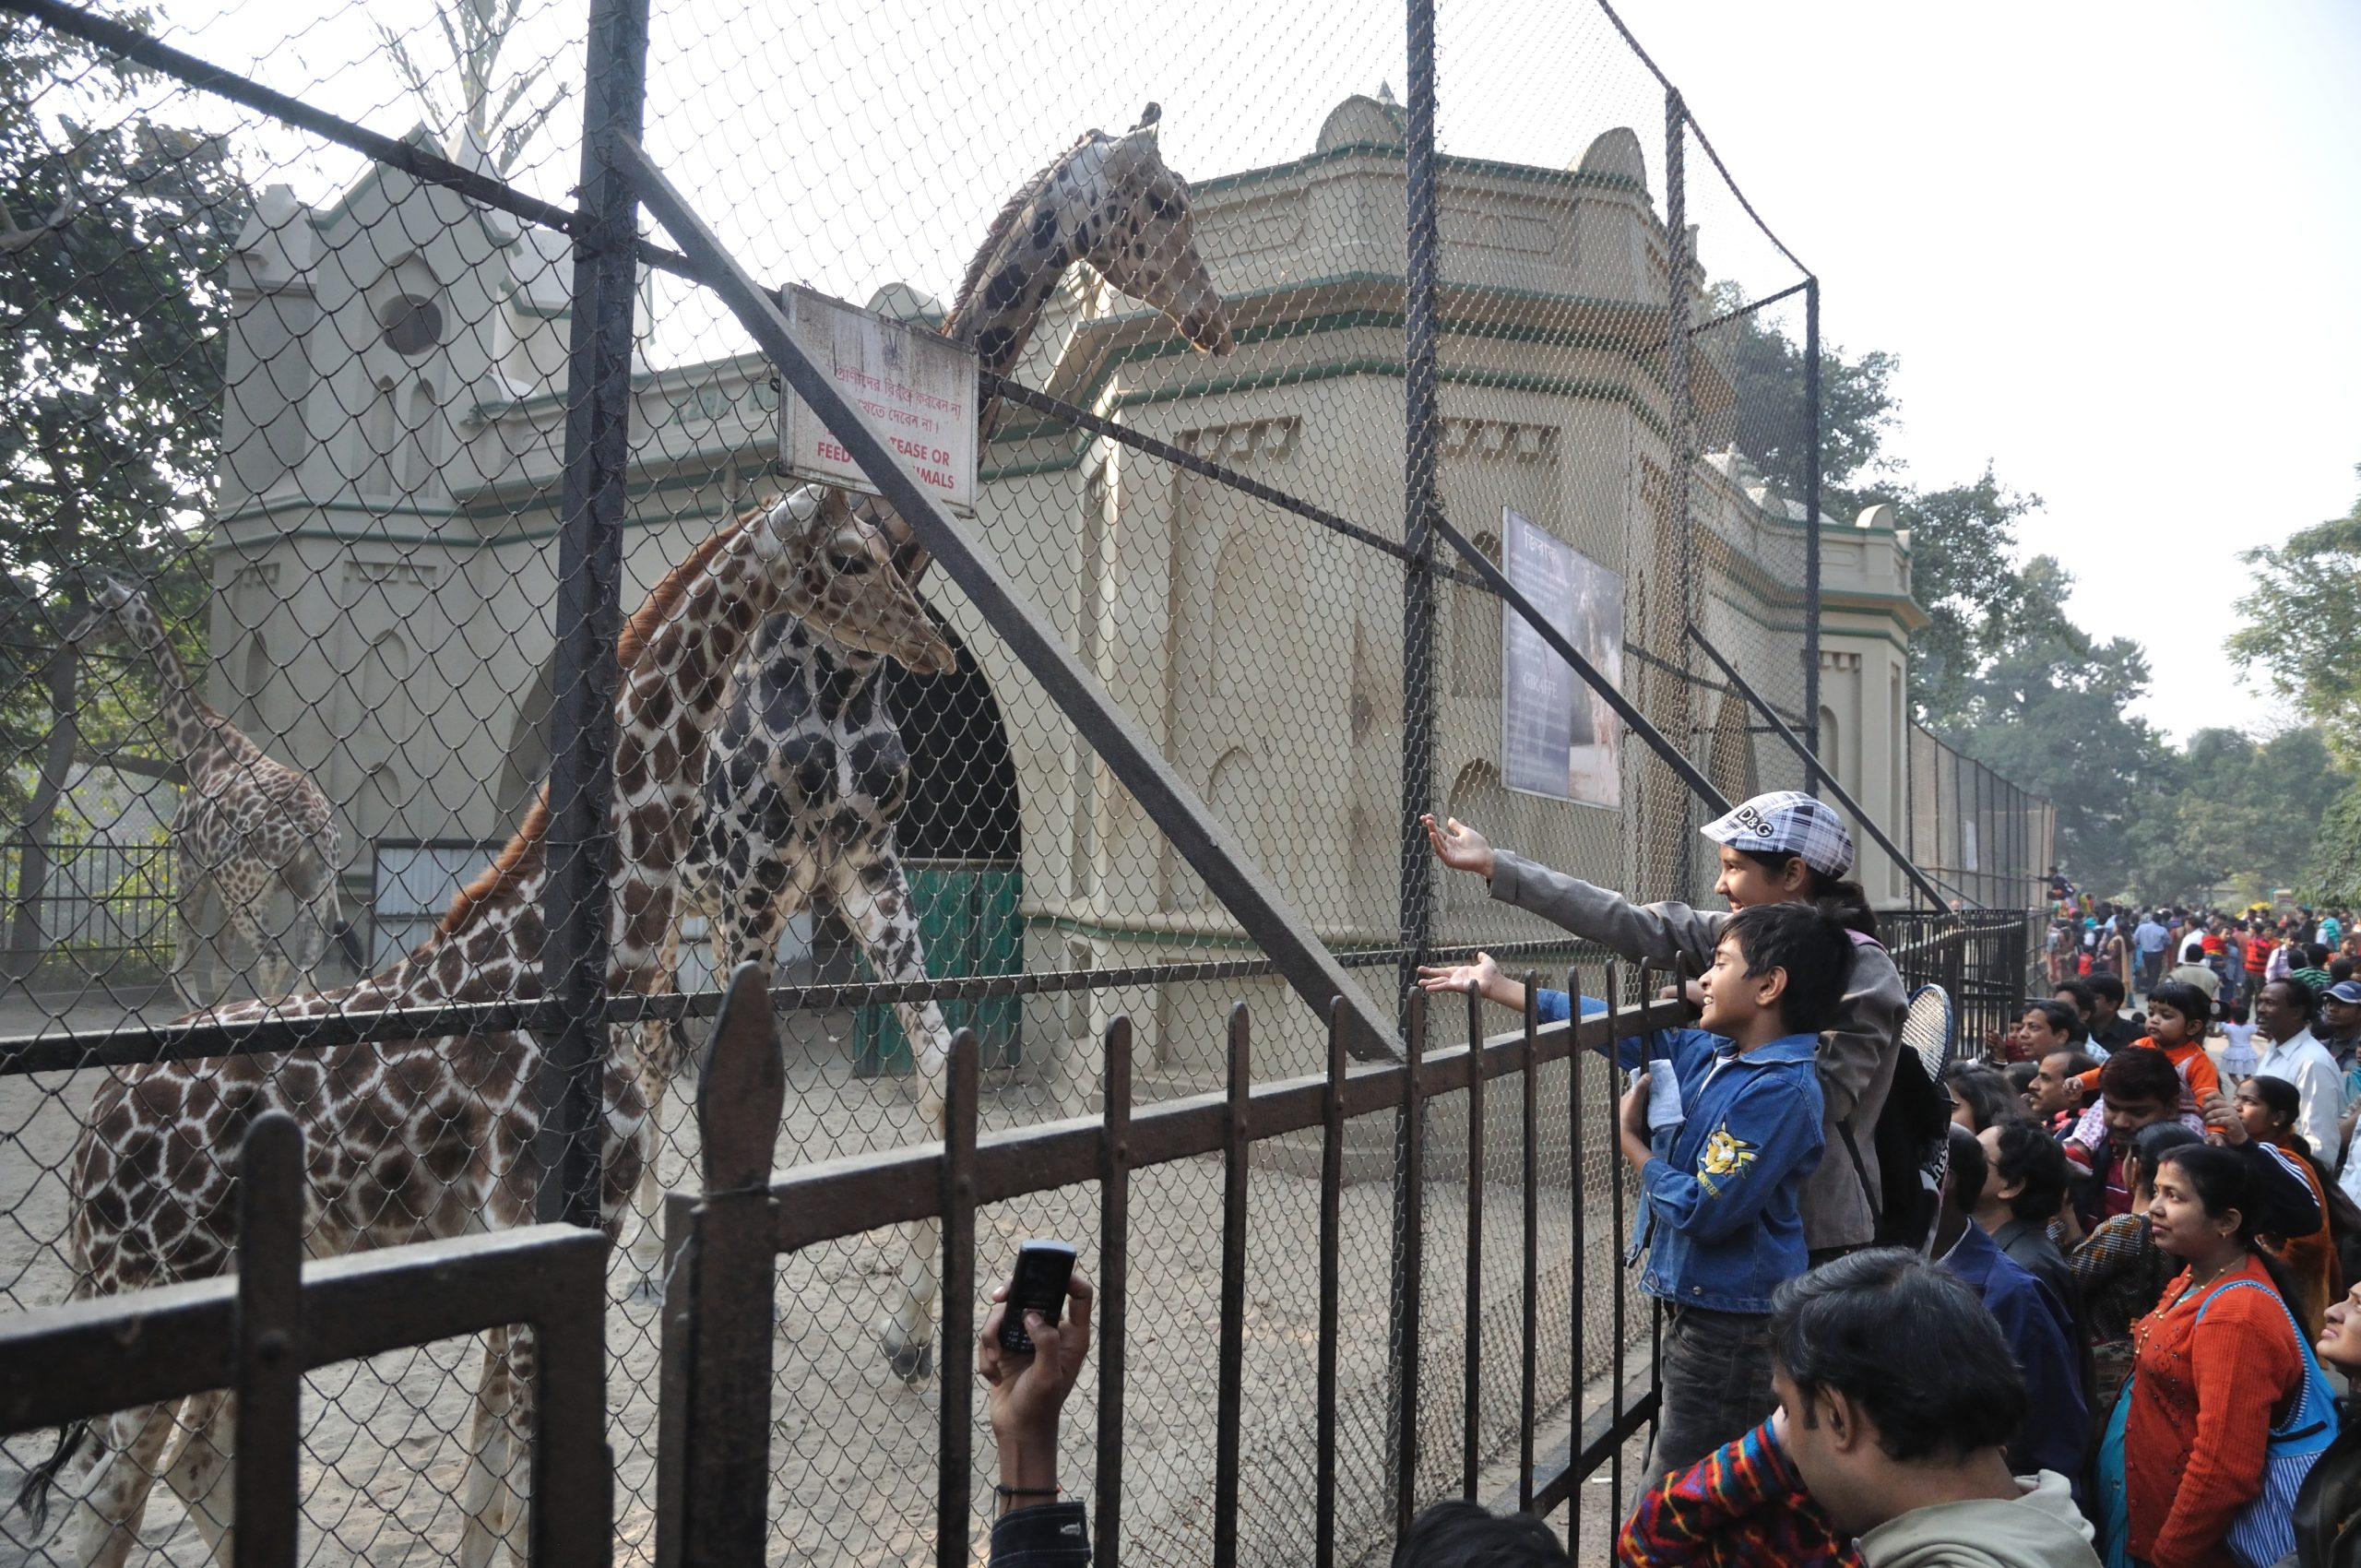 Alipore Zoo - Best Places In Kolkata For Every First-Time Traveler